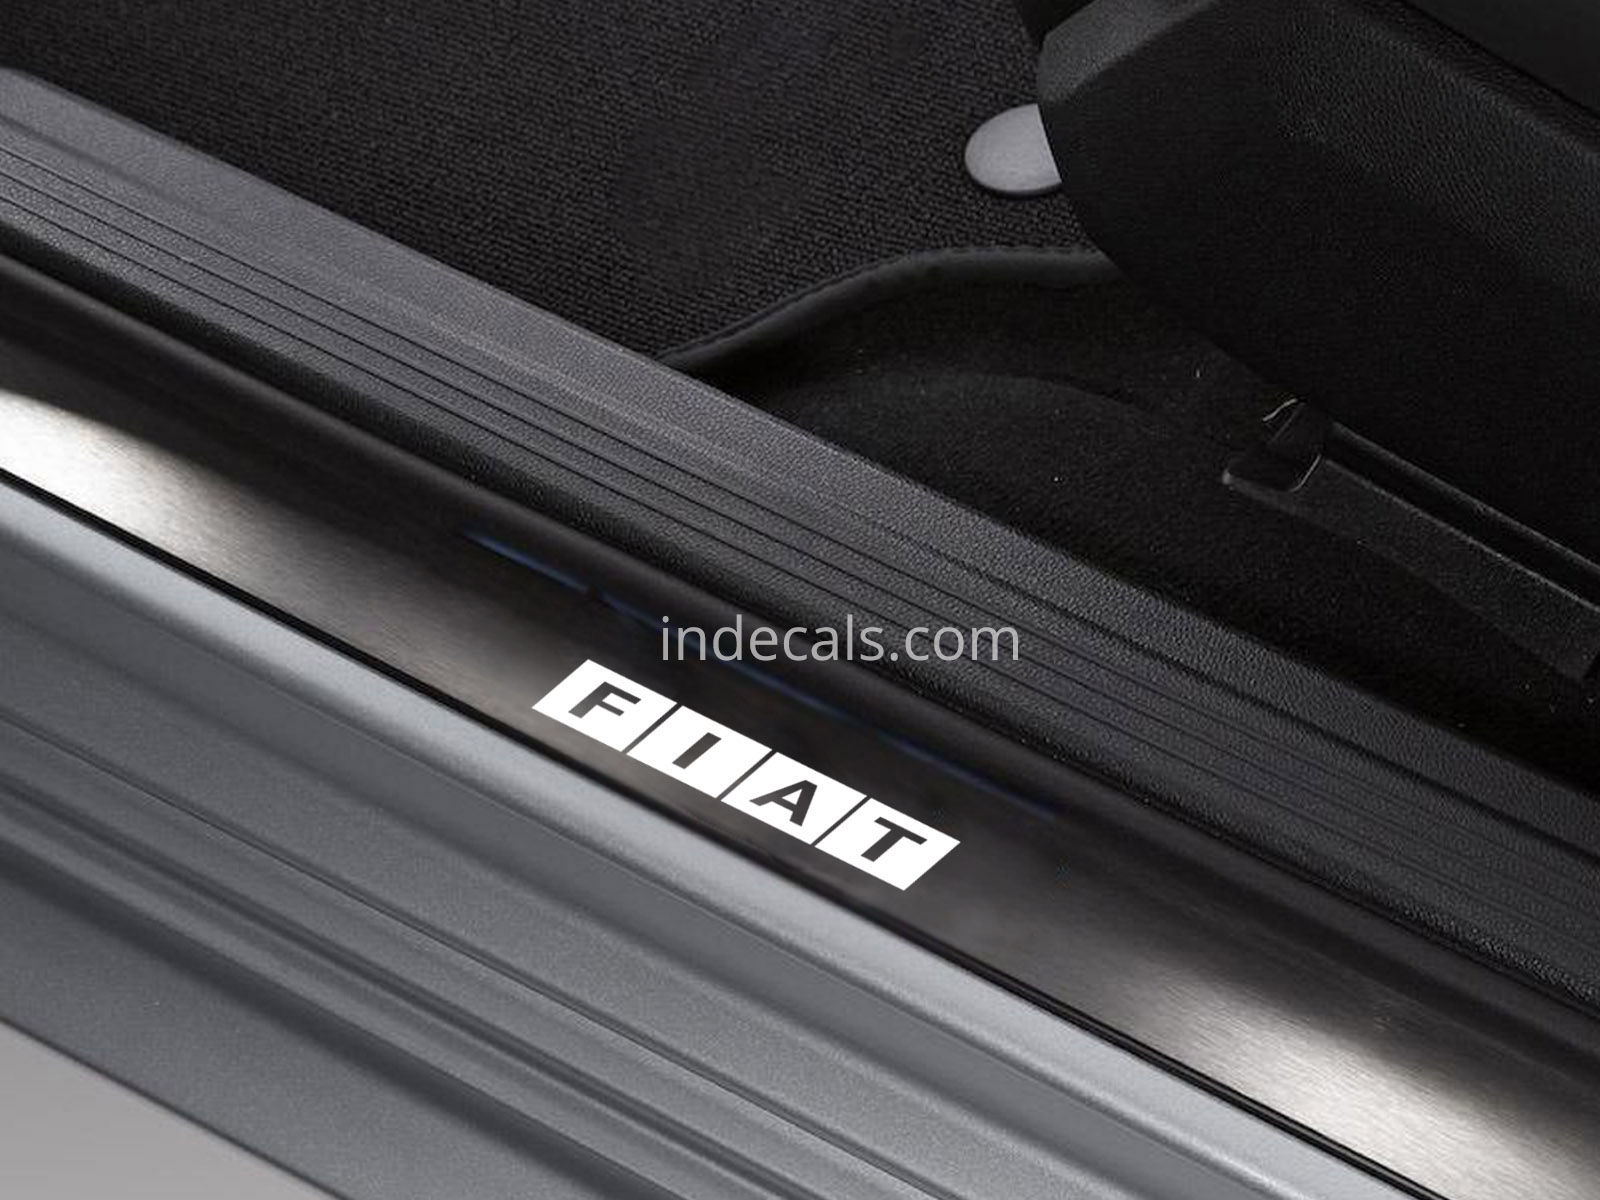 6 x Fiat Stickers for Door Sills - White